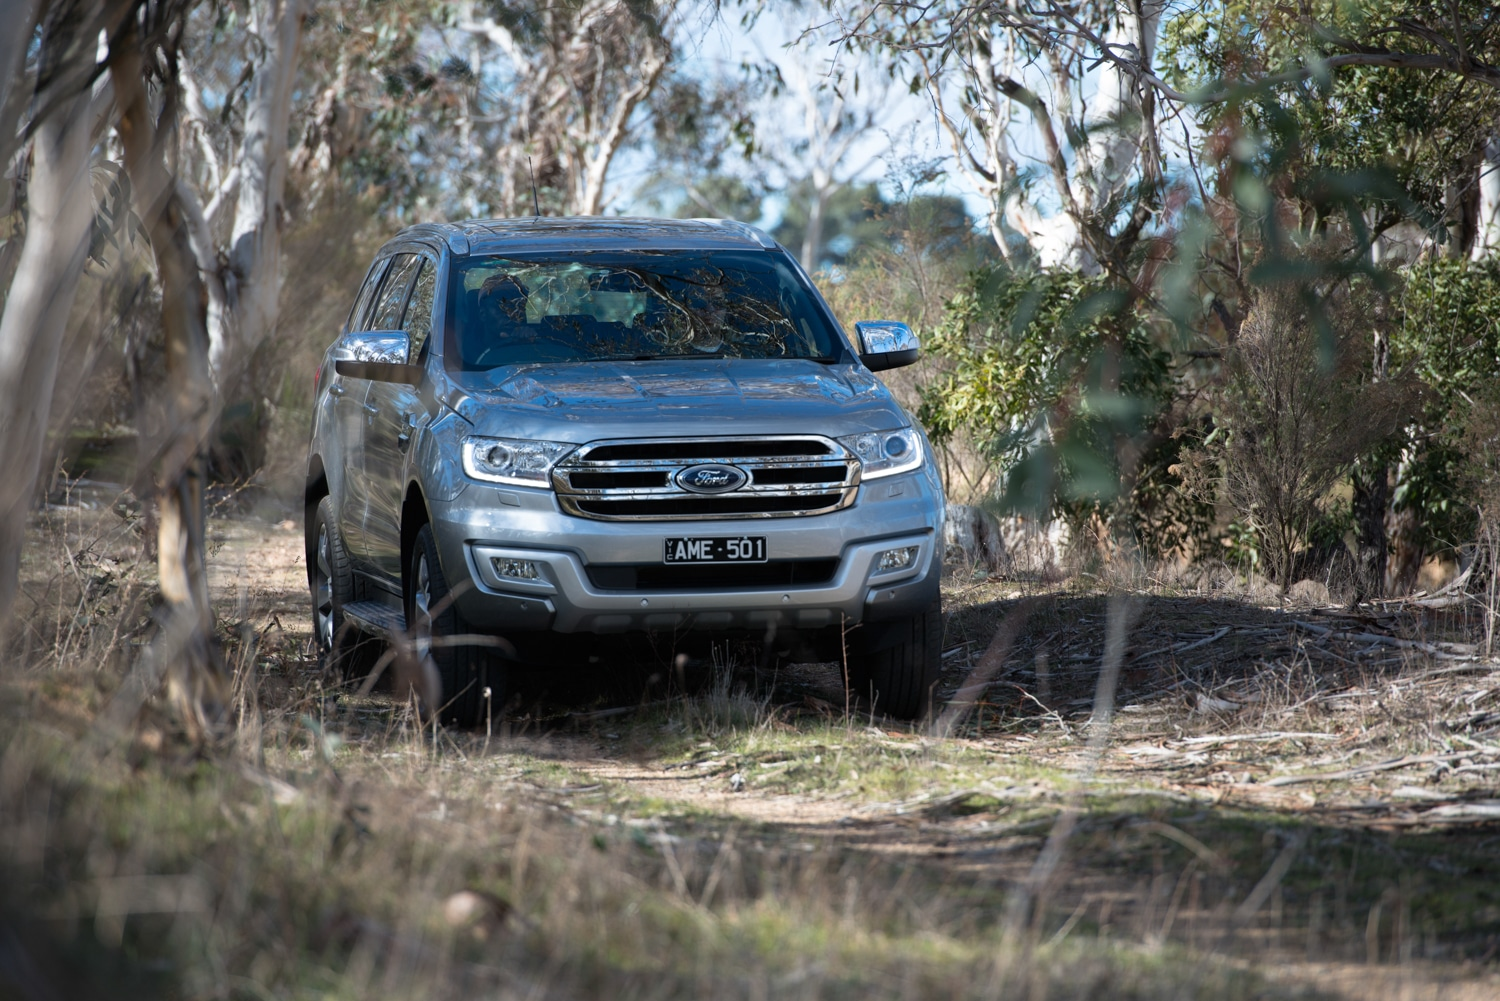 ford everest car in the jungle